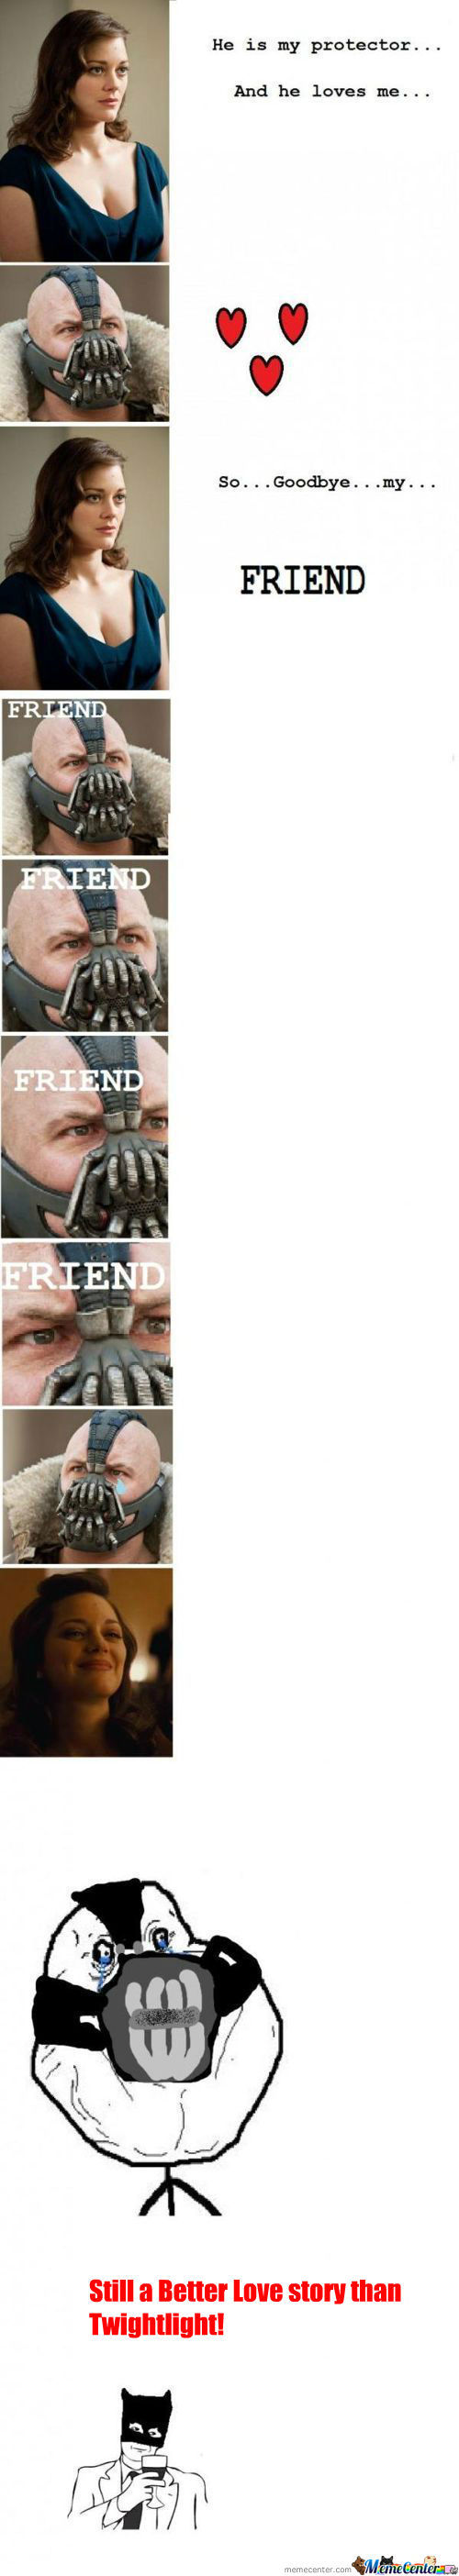 [RMX] Friendzoned Bane